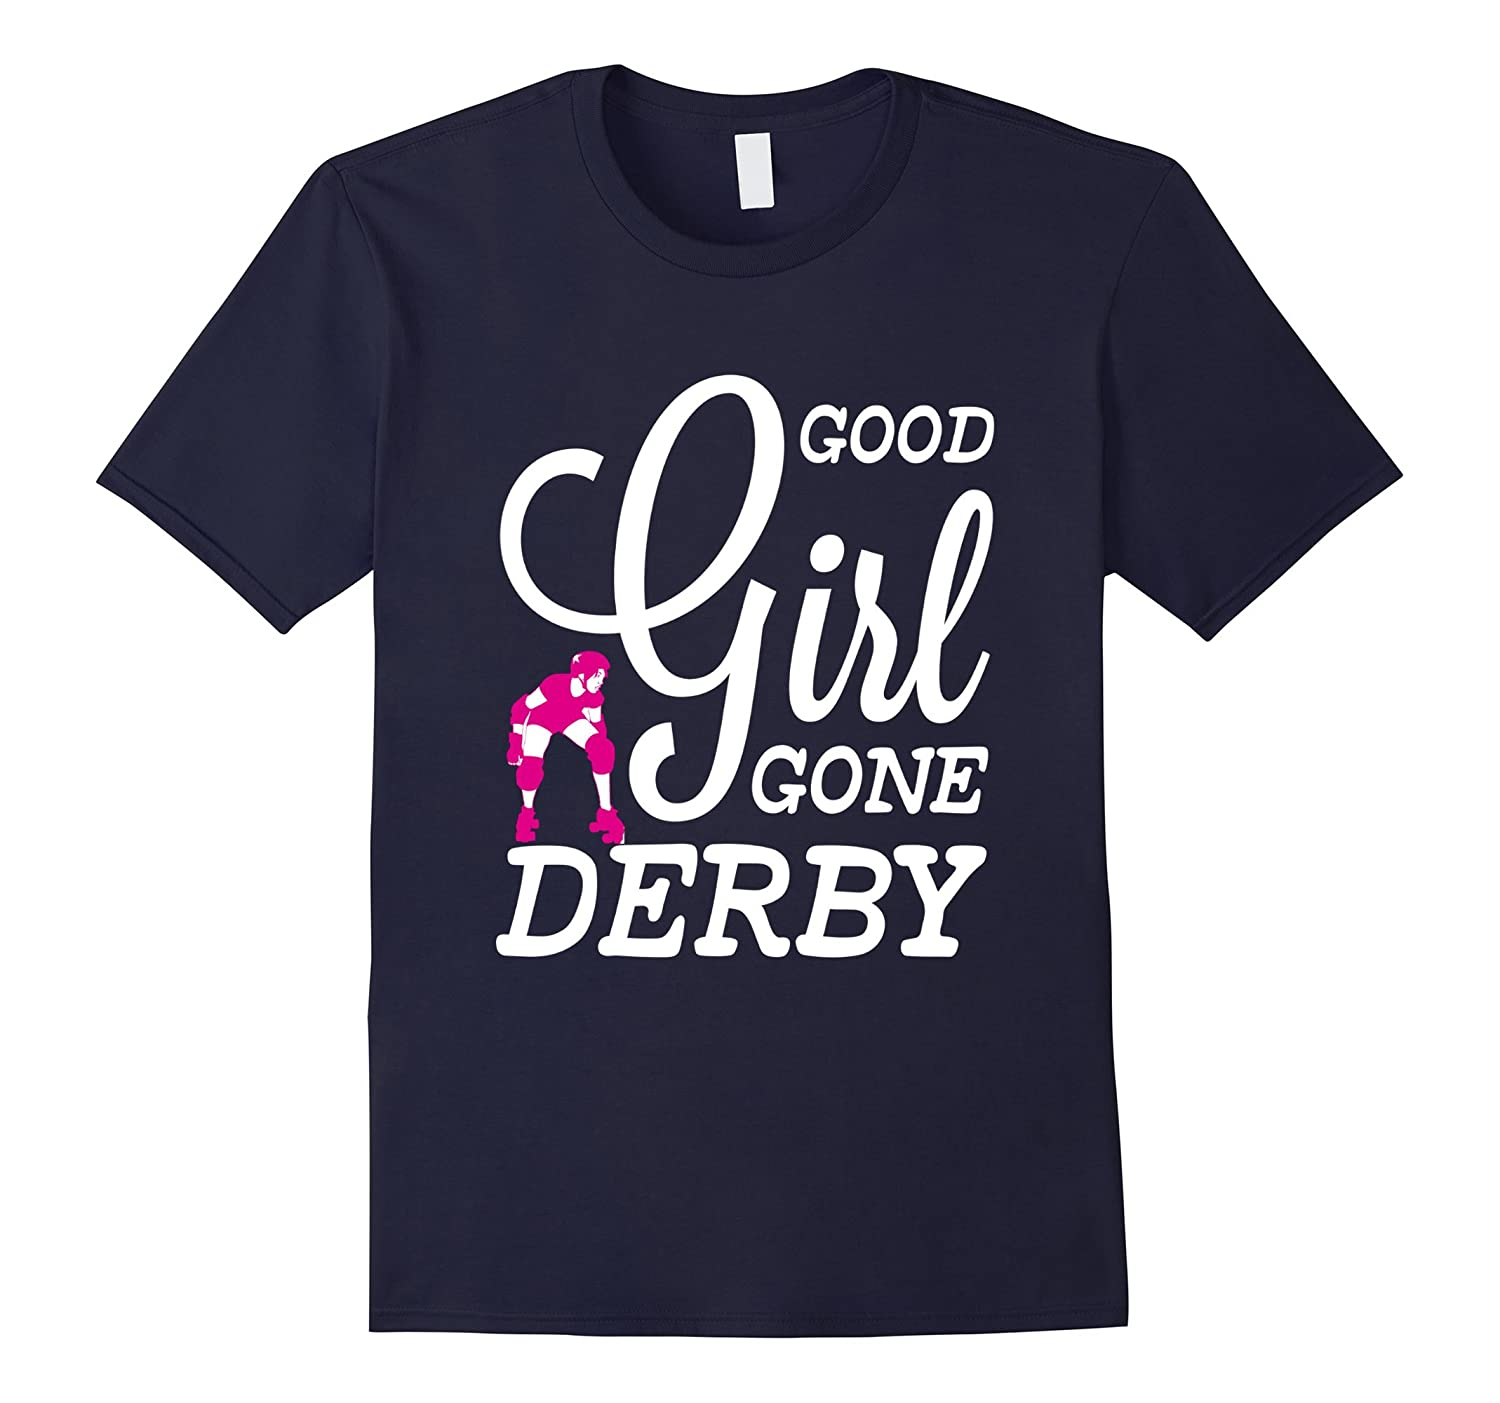 Good girl gone roller derby t shirts roller skating cd This guy has an awesome girlfriend shirt